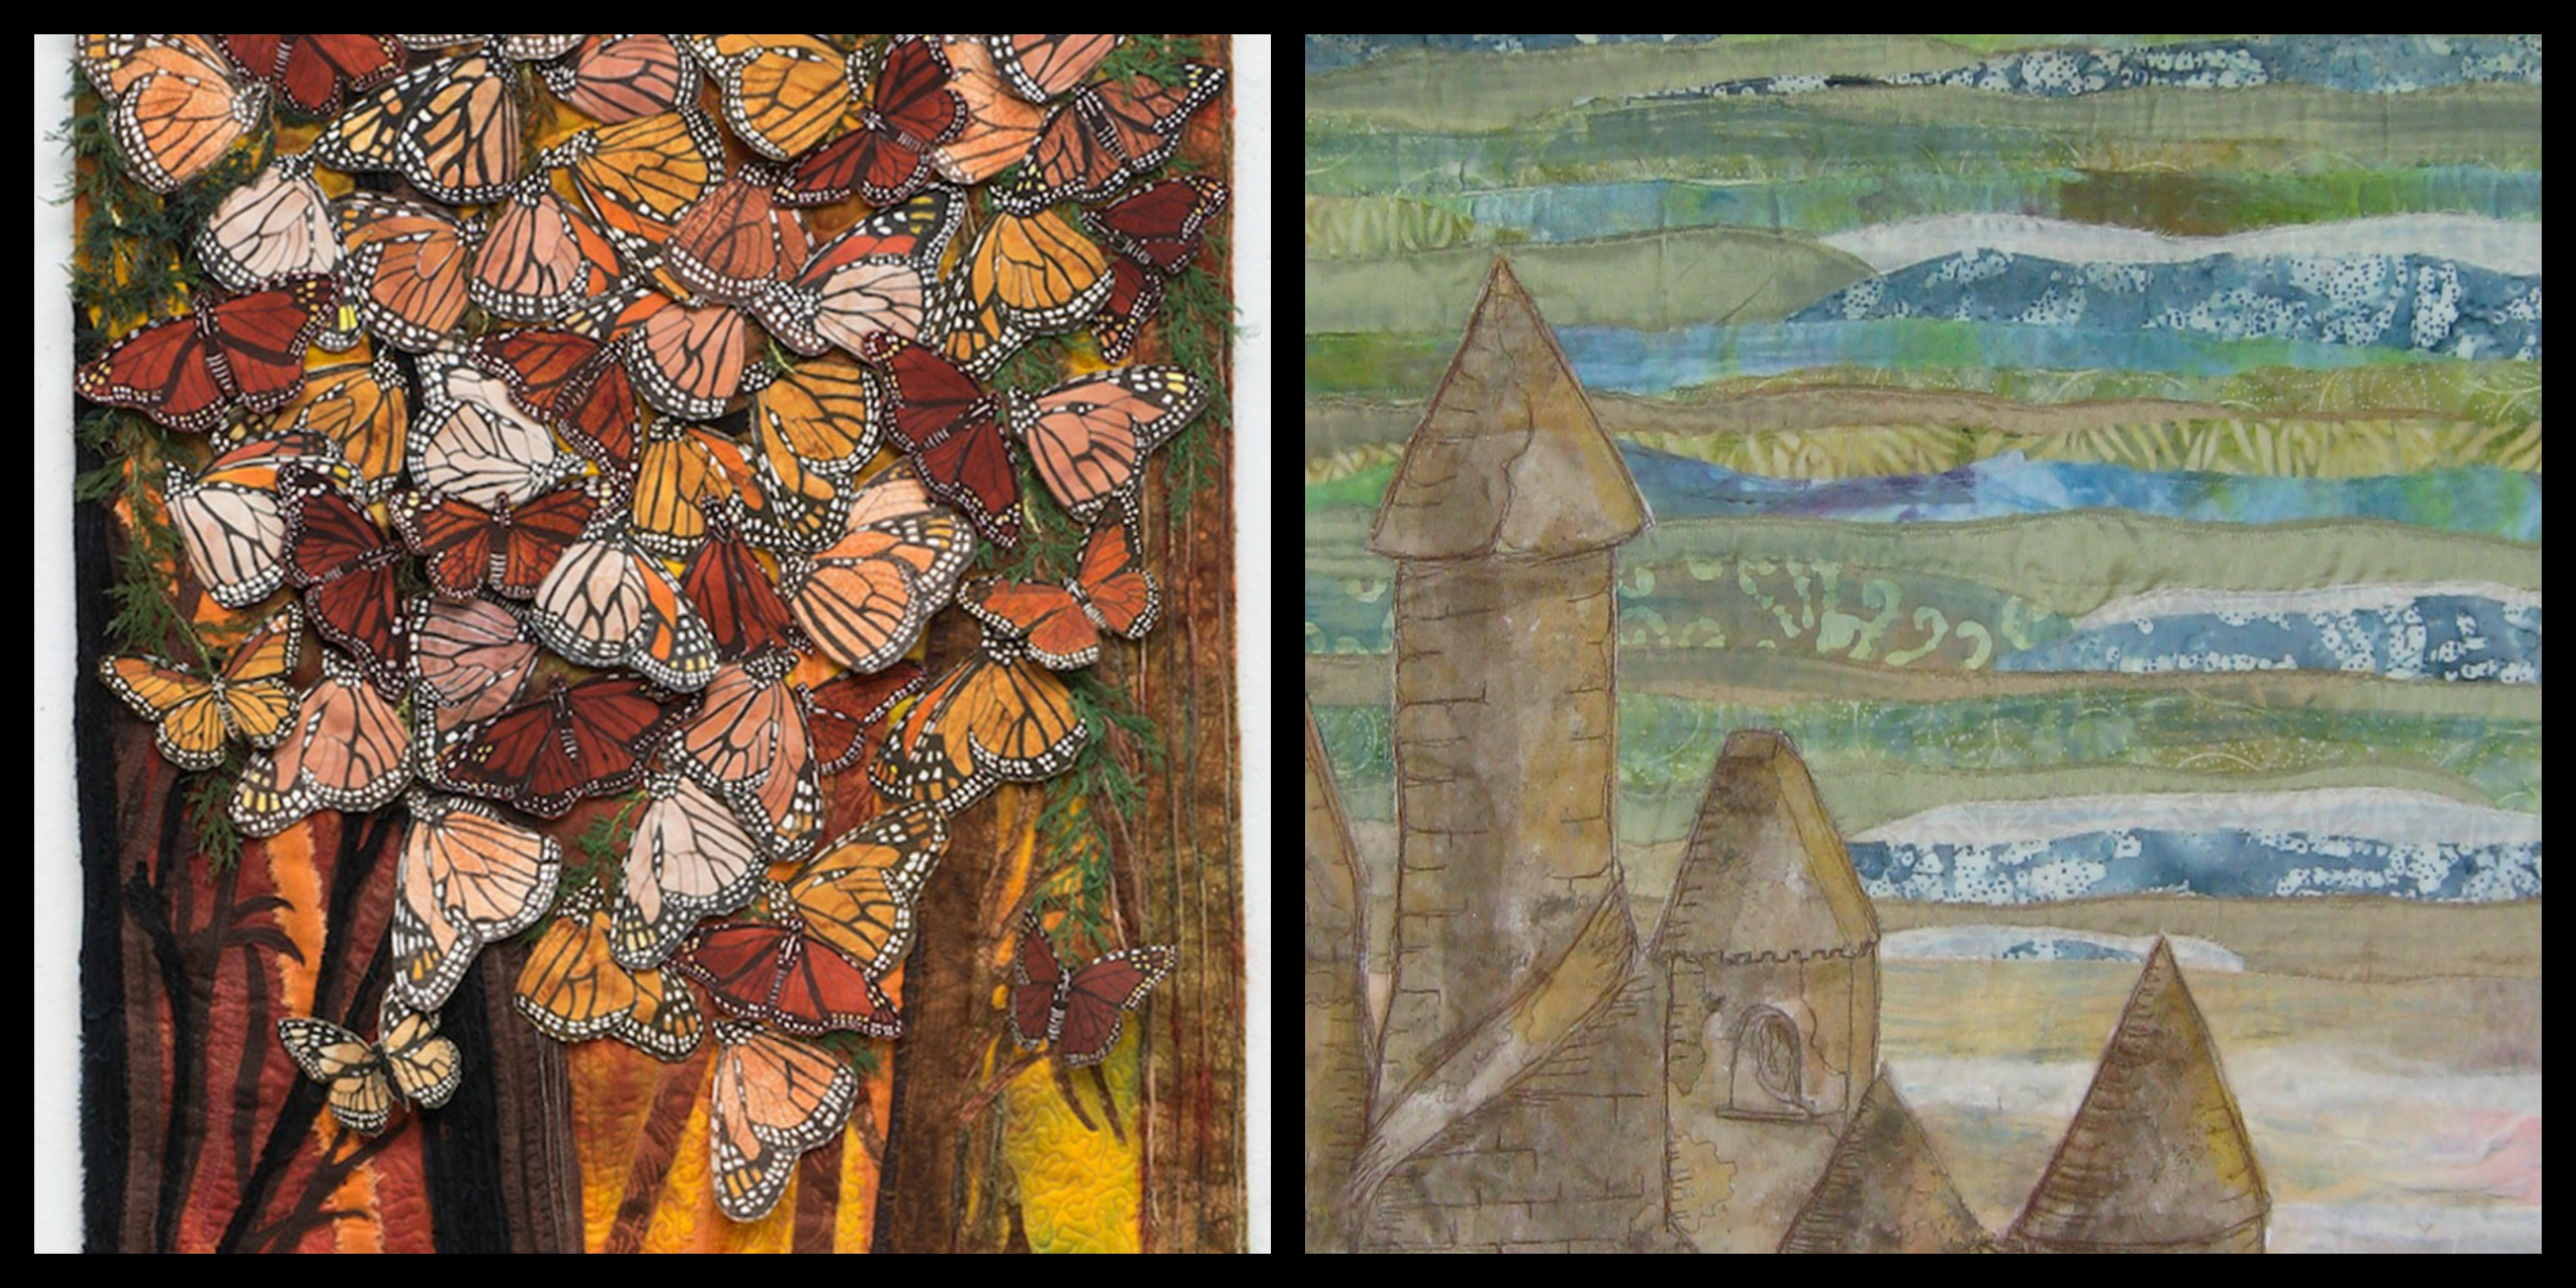 Close up image of art quilts with colorful orange and black butterflies, and a beige sandcastle against a blue sea